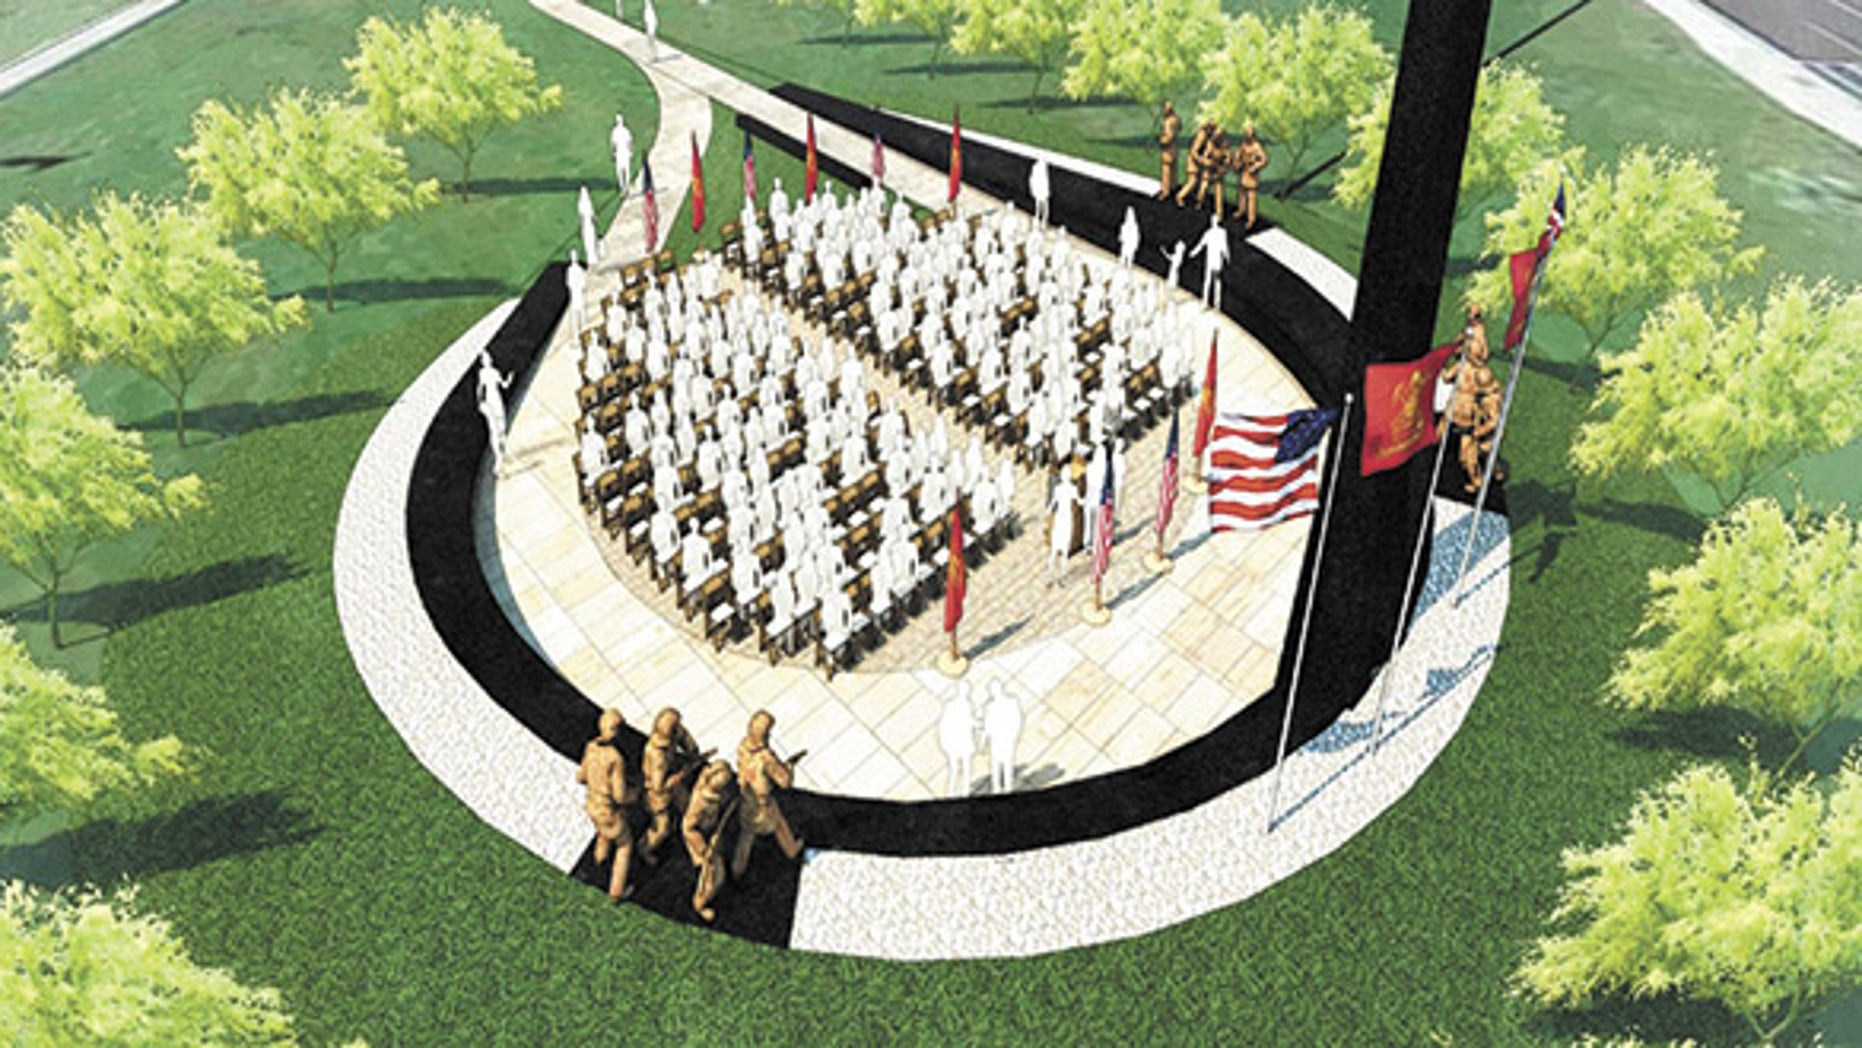 """The memorial in Phoenix will honor more than 100 firefighters and paramedics who have died on duty, including 19 members of elite """"Hotshot"""" team who were killed in a tragic 2013 brush fire. (Arizona Fallen Firefighter Memorial)"""